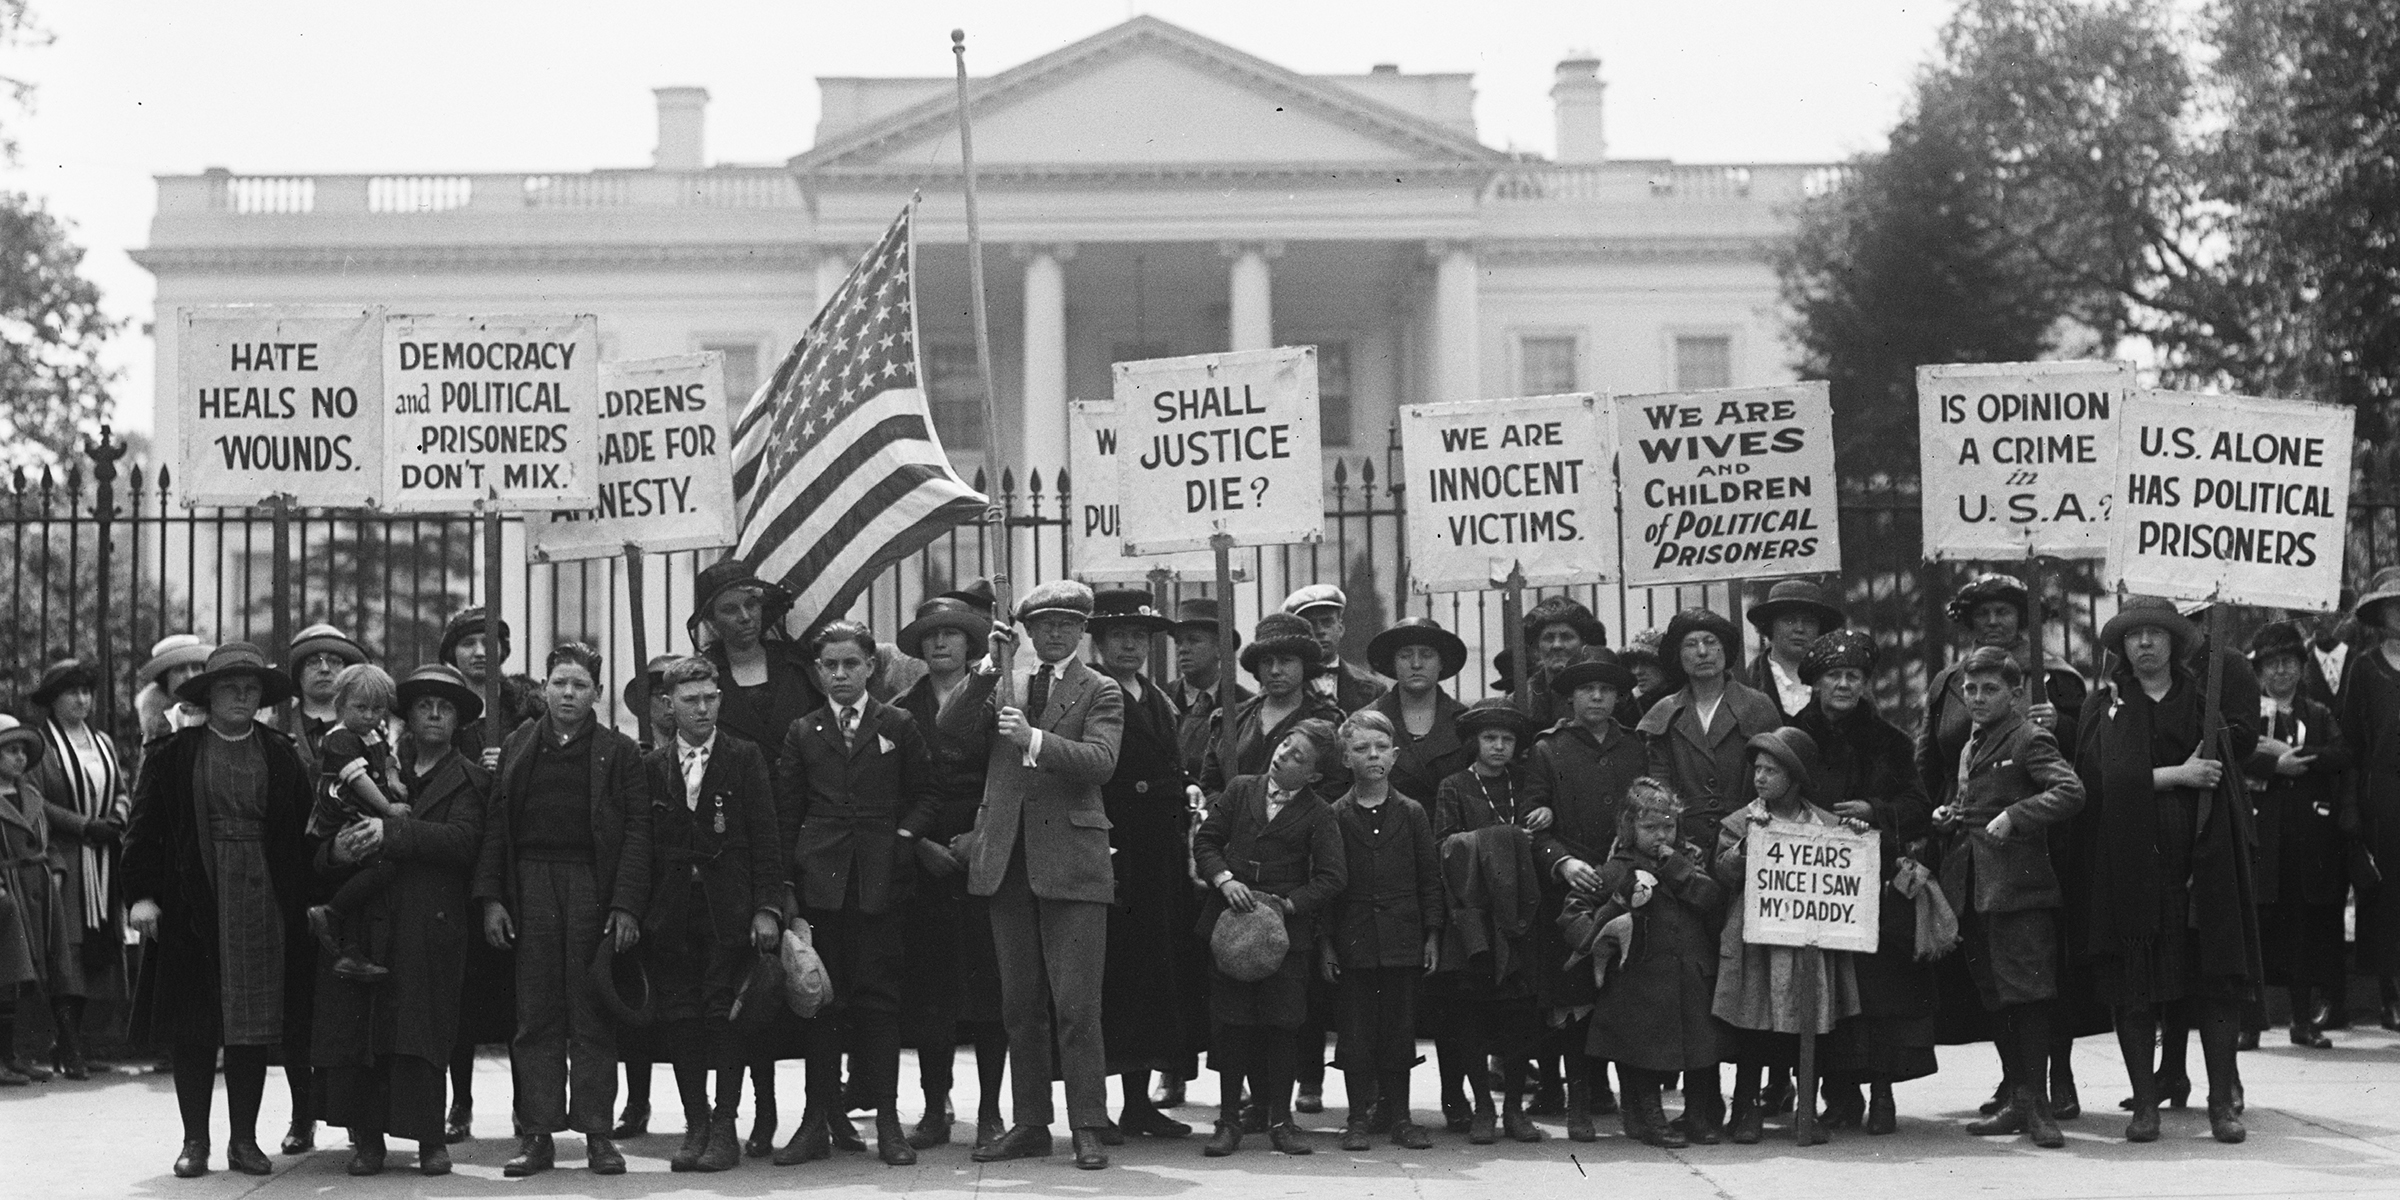 Members of the Children's Crusade for Amnesty protesting at the White House for the release of political prisoners, Washington, DC, 1922.